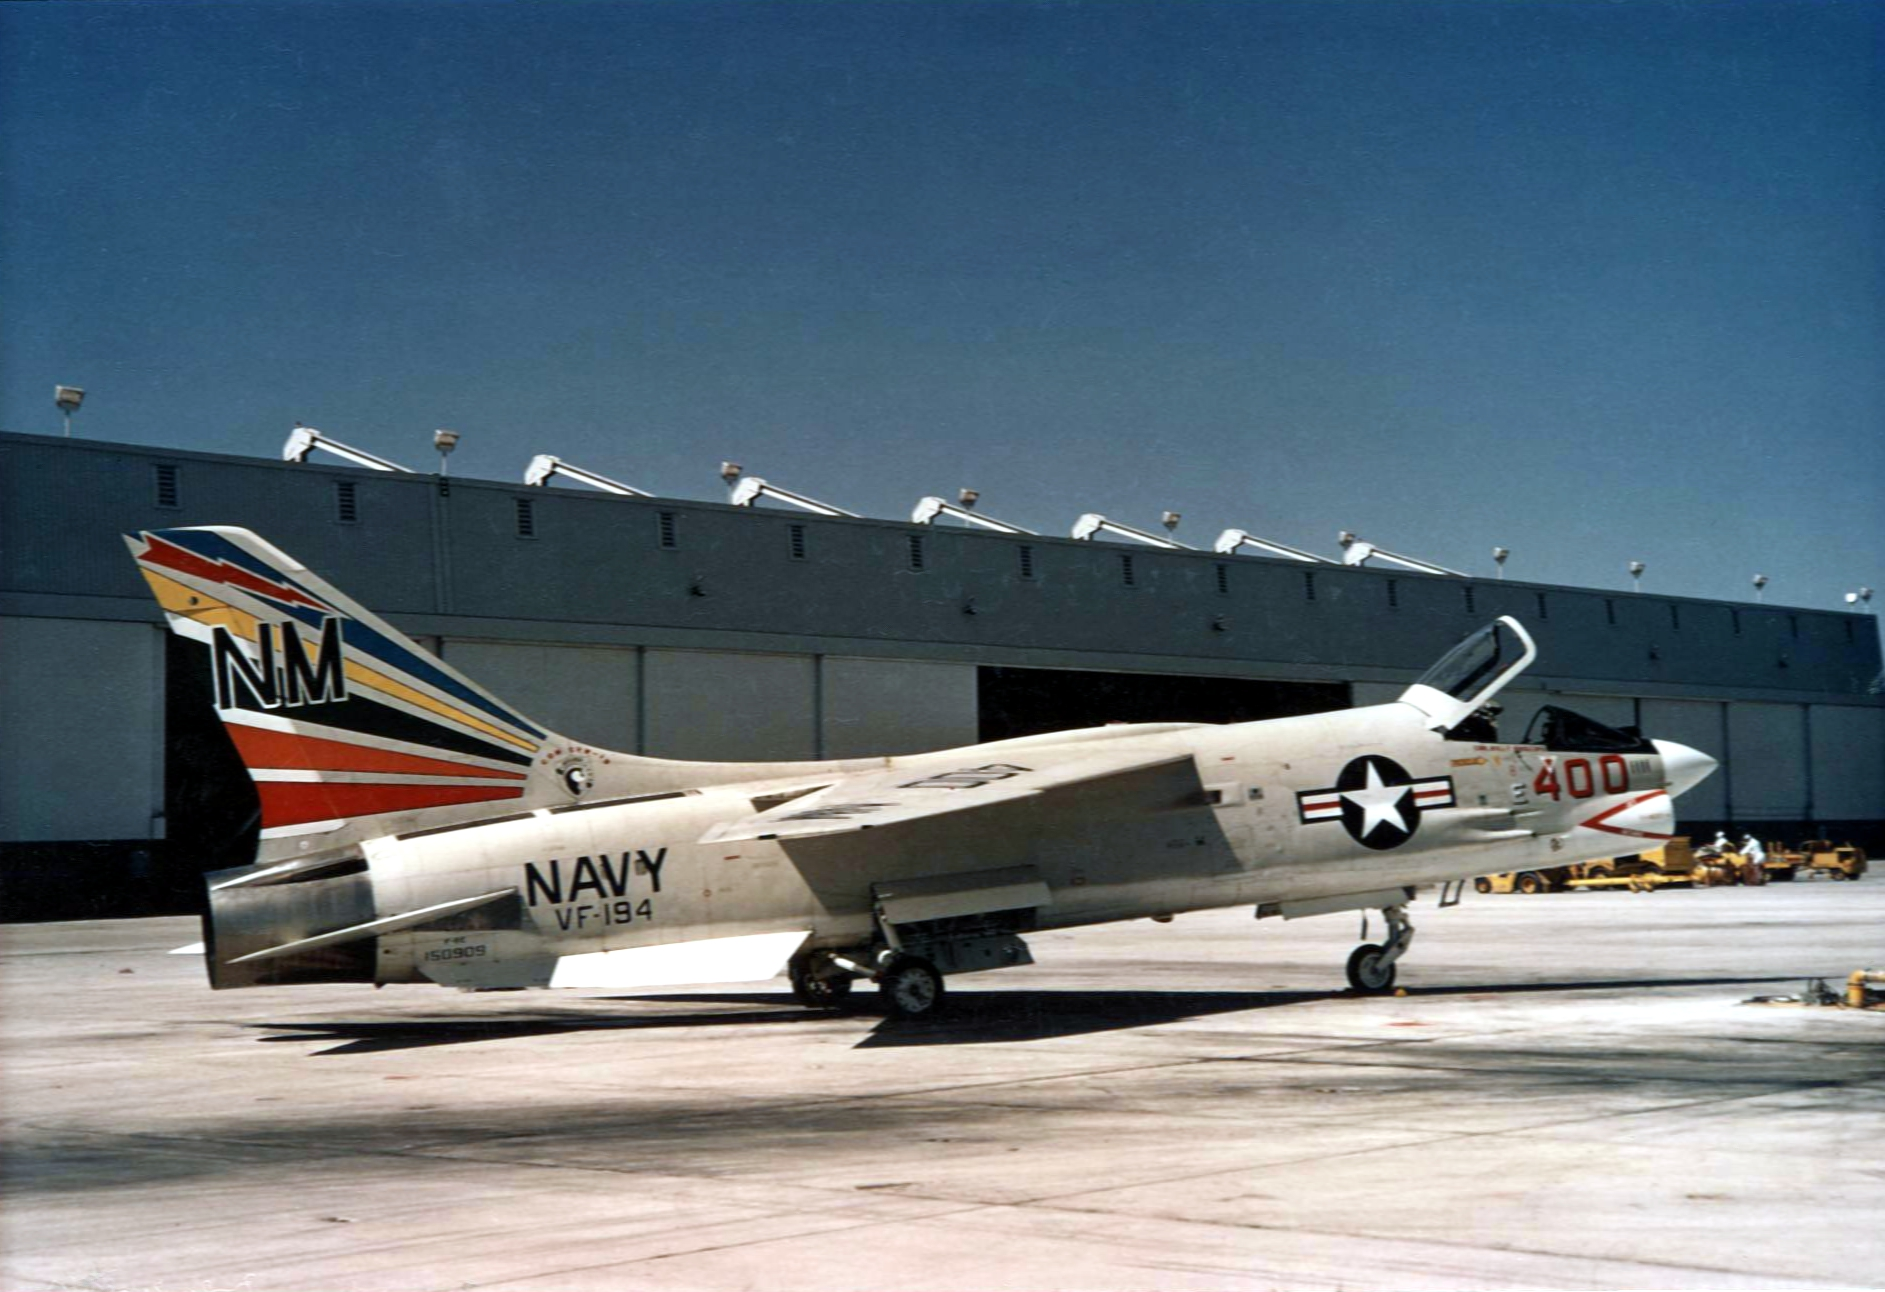 F-8E_Crusader_VF-194_CAG-bird_at_NAS_Miramar_1966.jpg